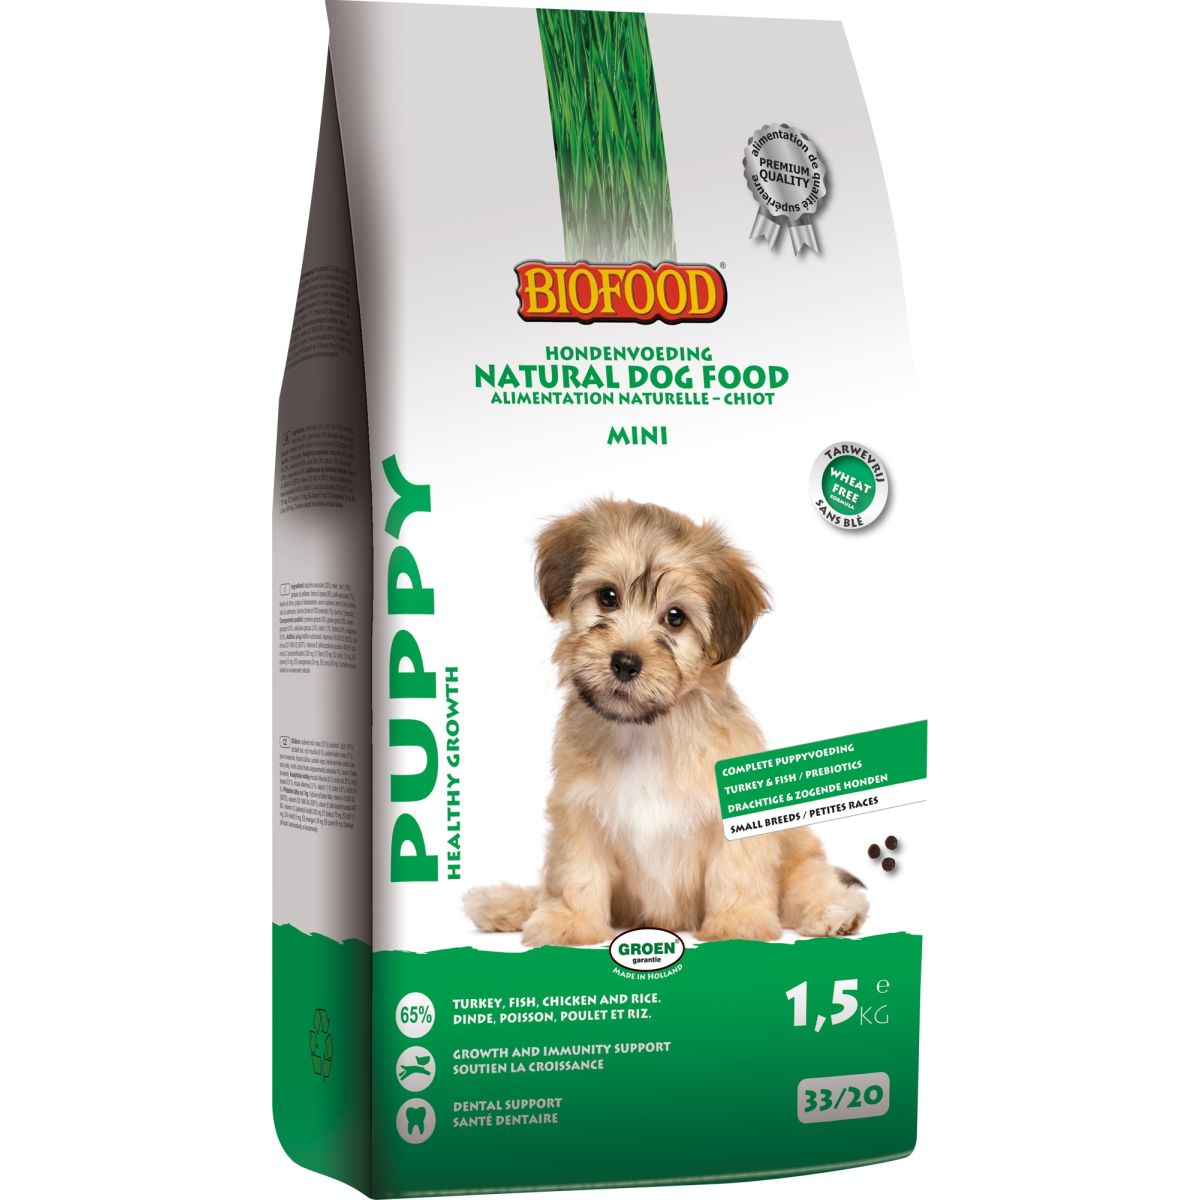 Biofood Puppy Small Breed hondenvoer 1.5 kg